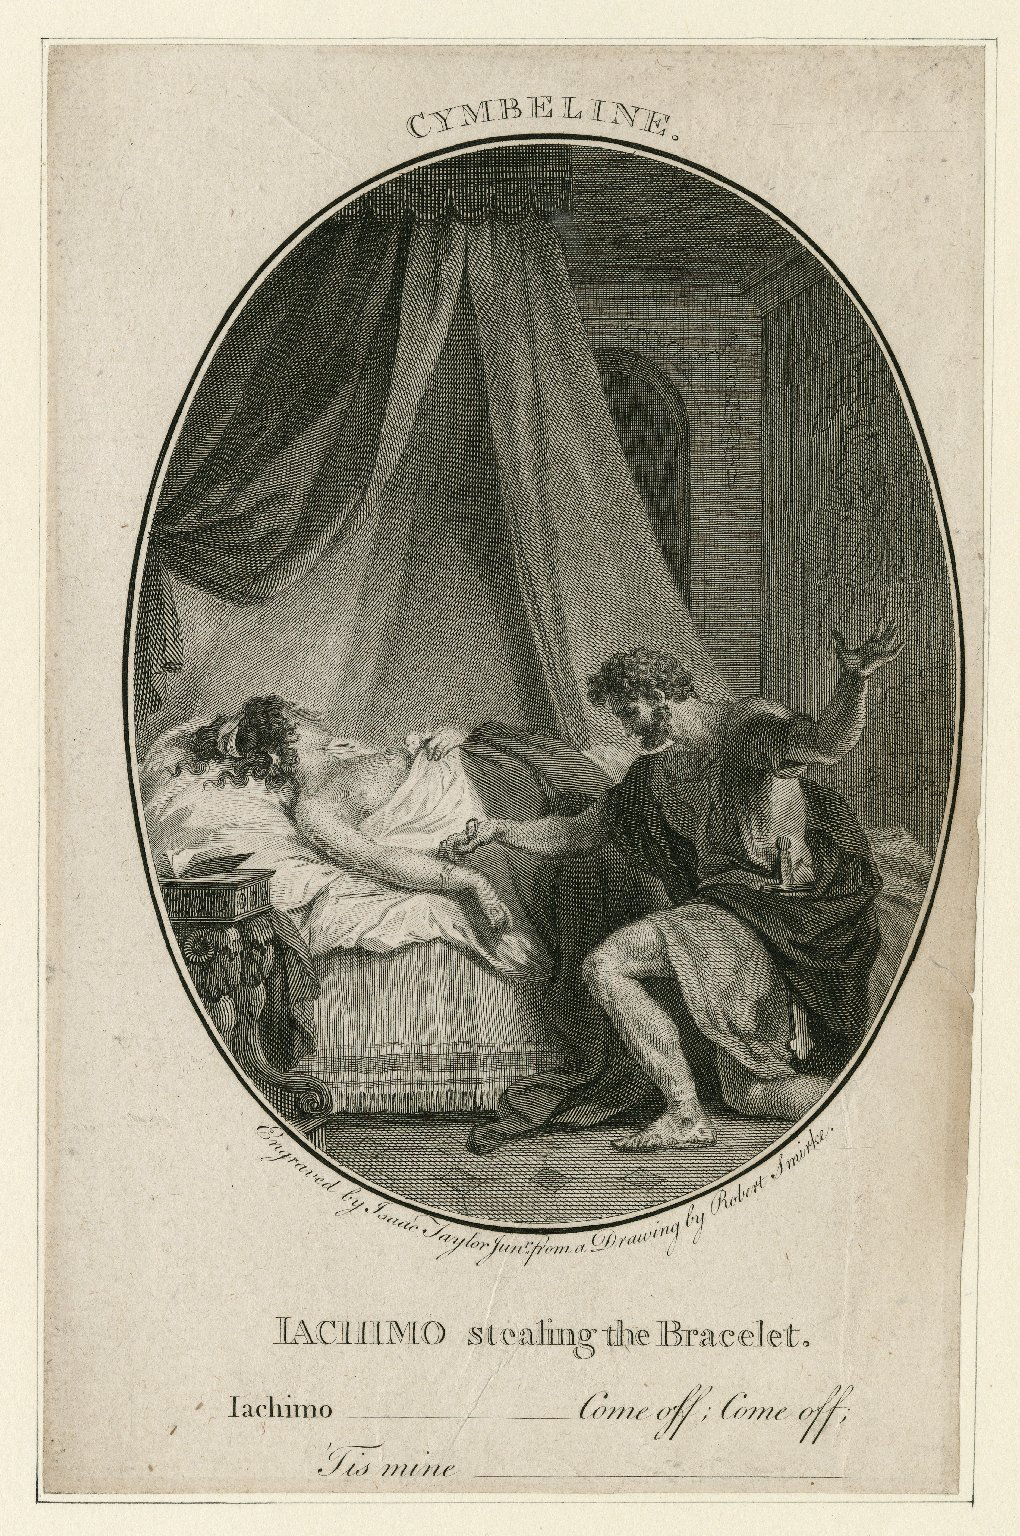 Iachimo stealing the bracelet ... come off; come off; 'Tis mine, Cymbeline, [act II, scene 2] [graphic] / engraved by Isaac Taylor Junr. from a drawing by Robert Smirke.